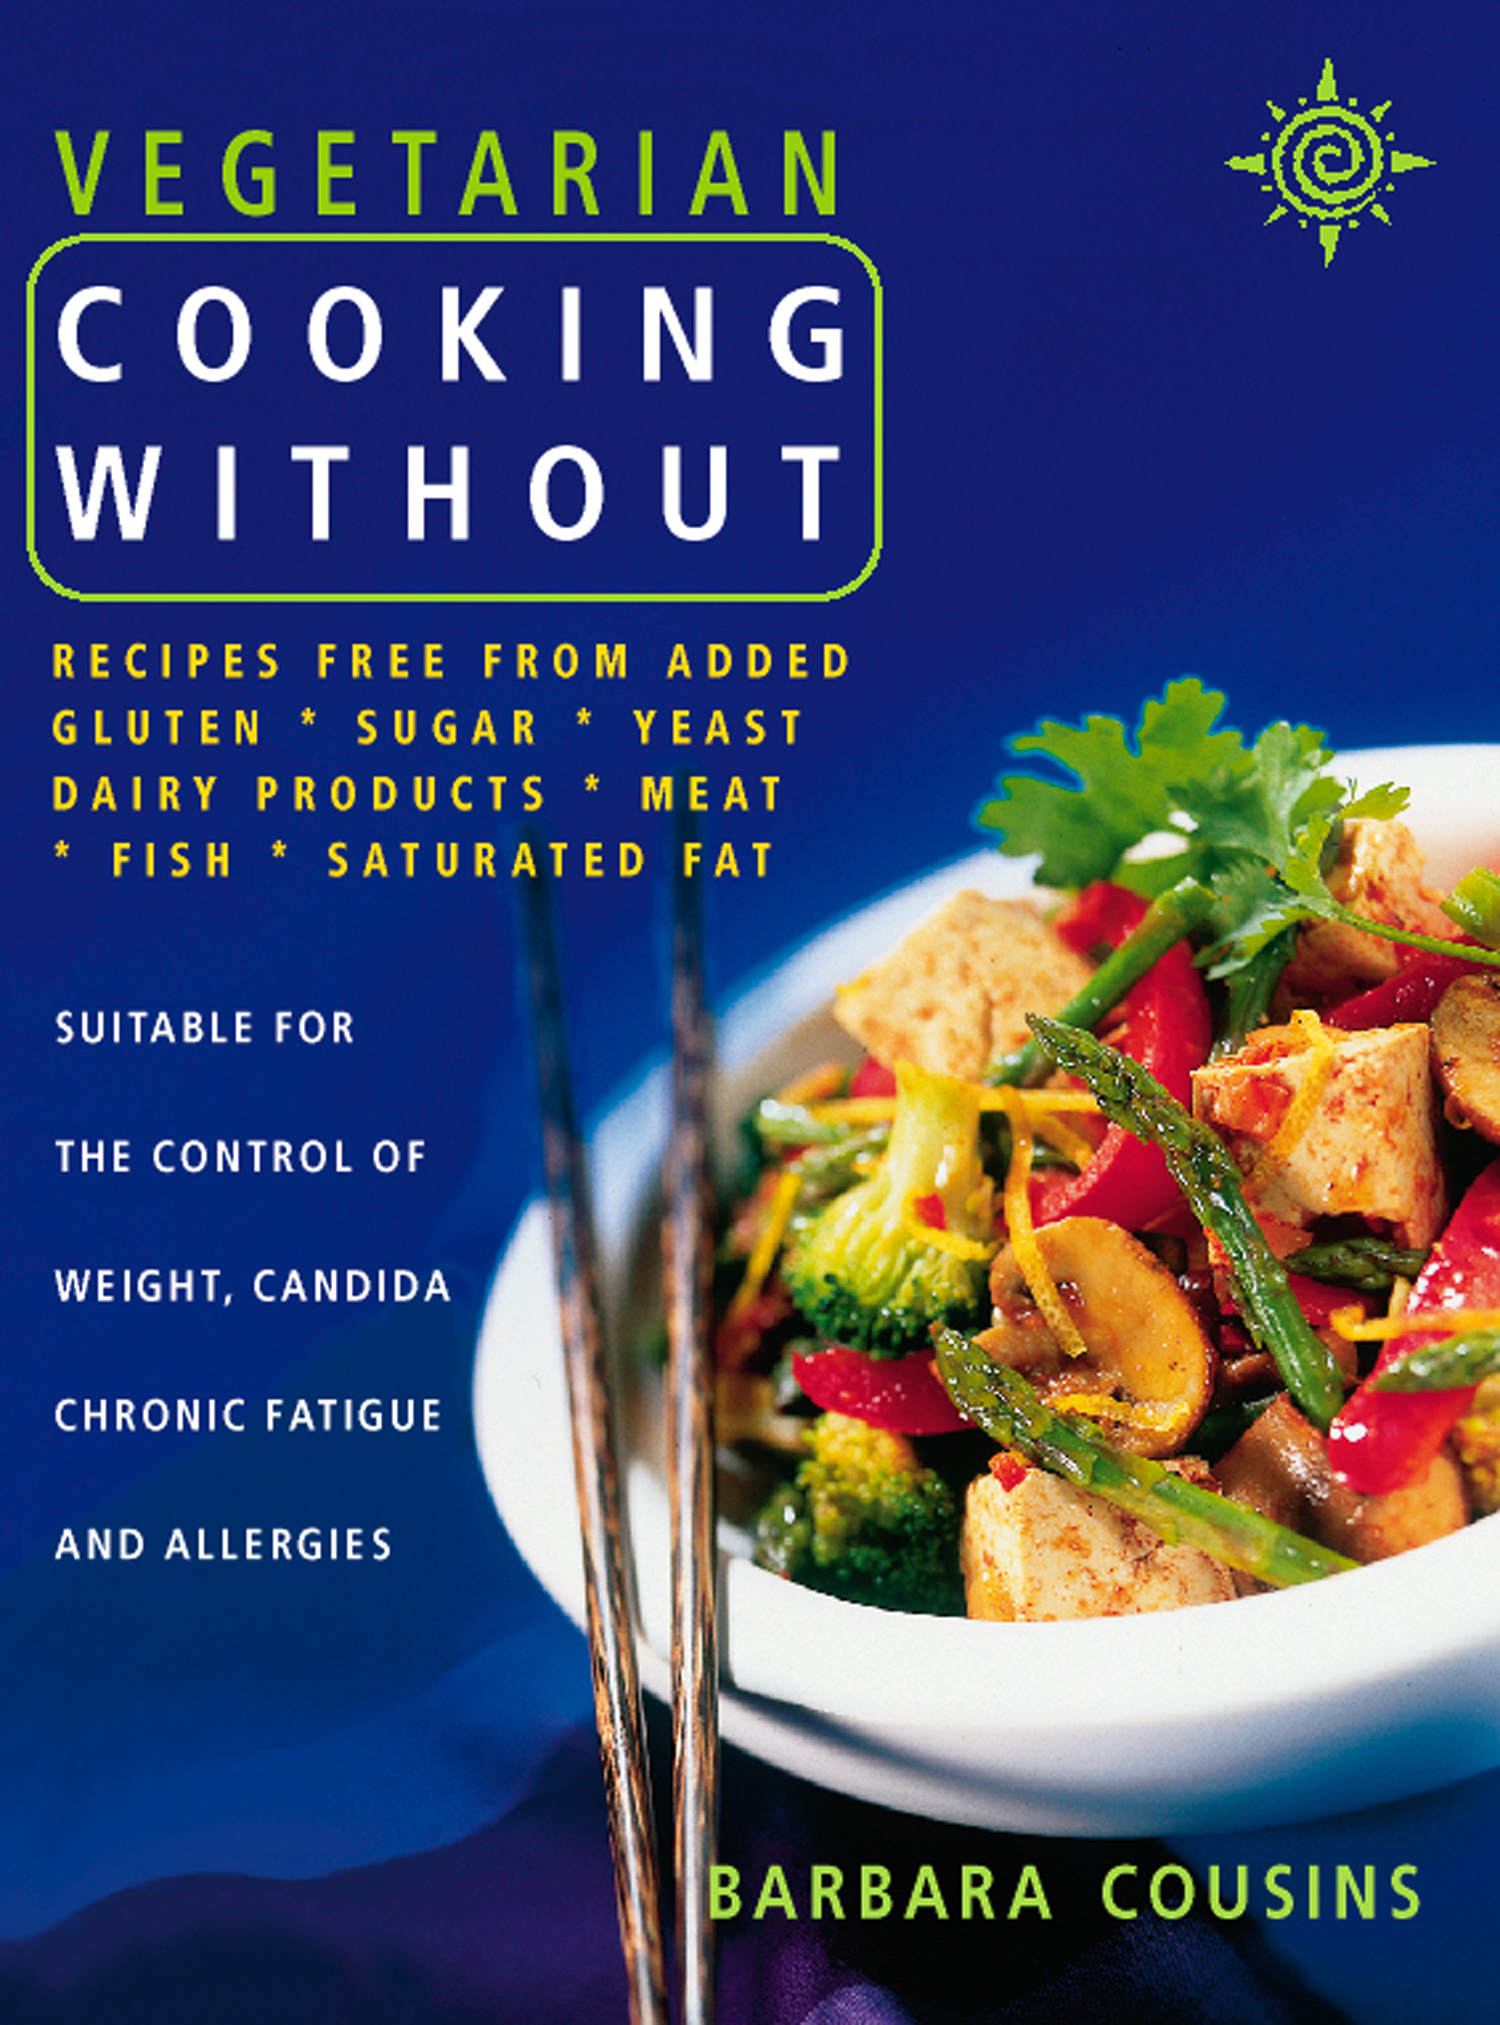 Vegetarian Cooking Without: Recipes free from added gluten,  sugar,  yeast,  dairy products,  meat,  fish,  saturated fat (Text only)